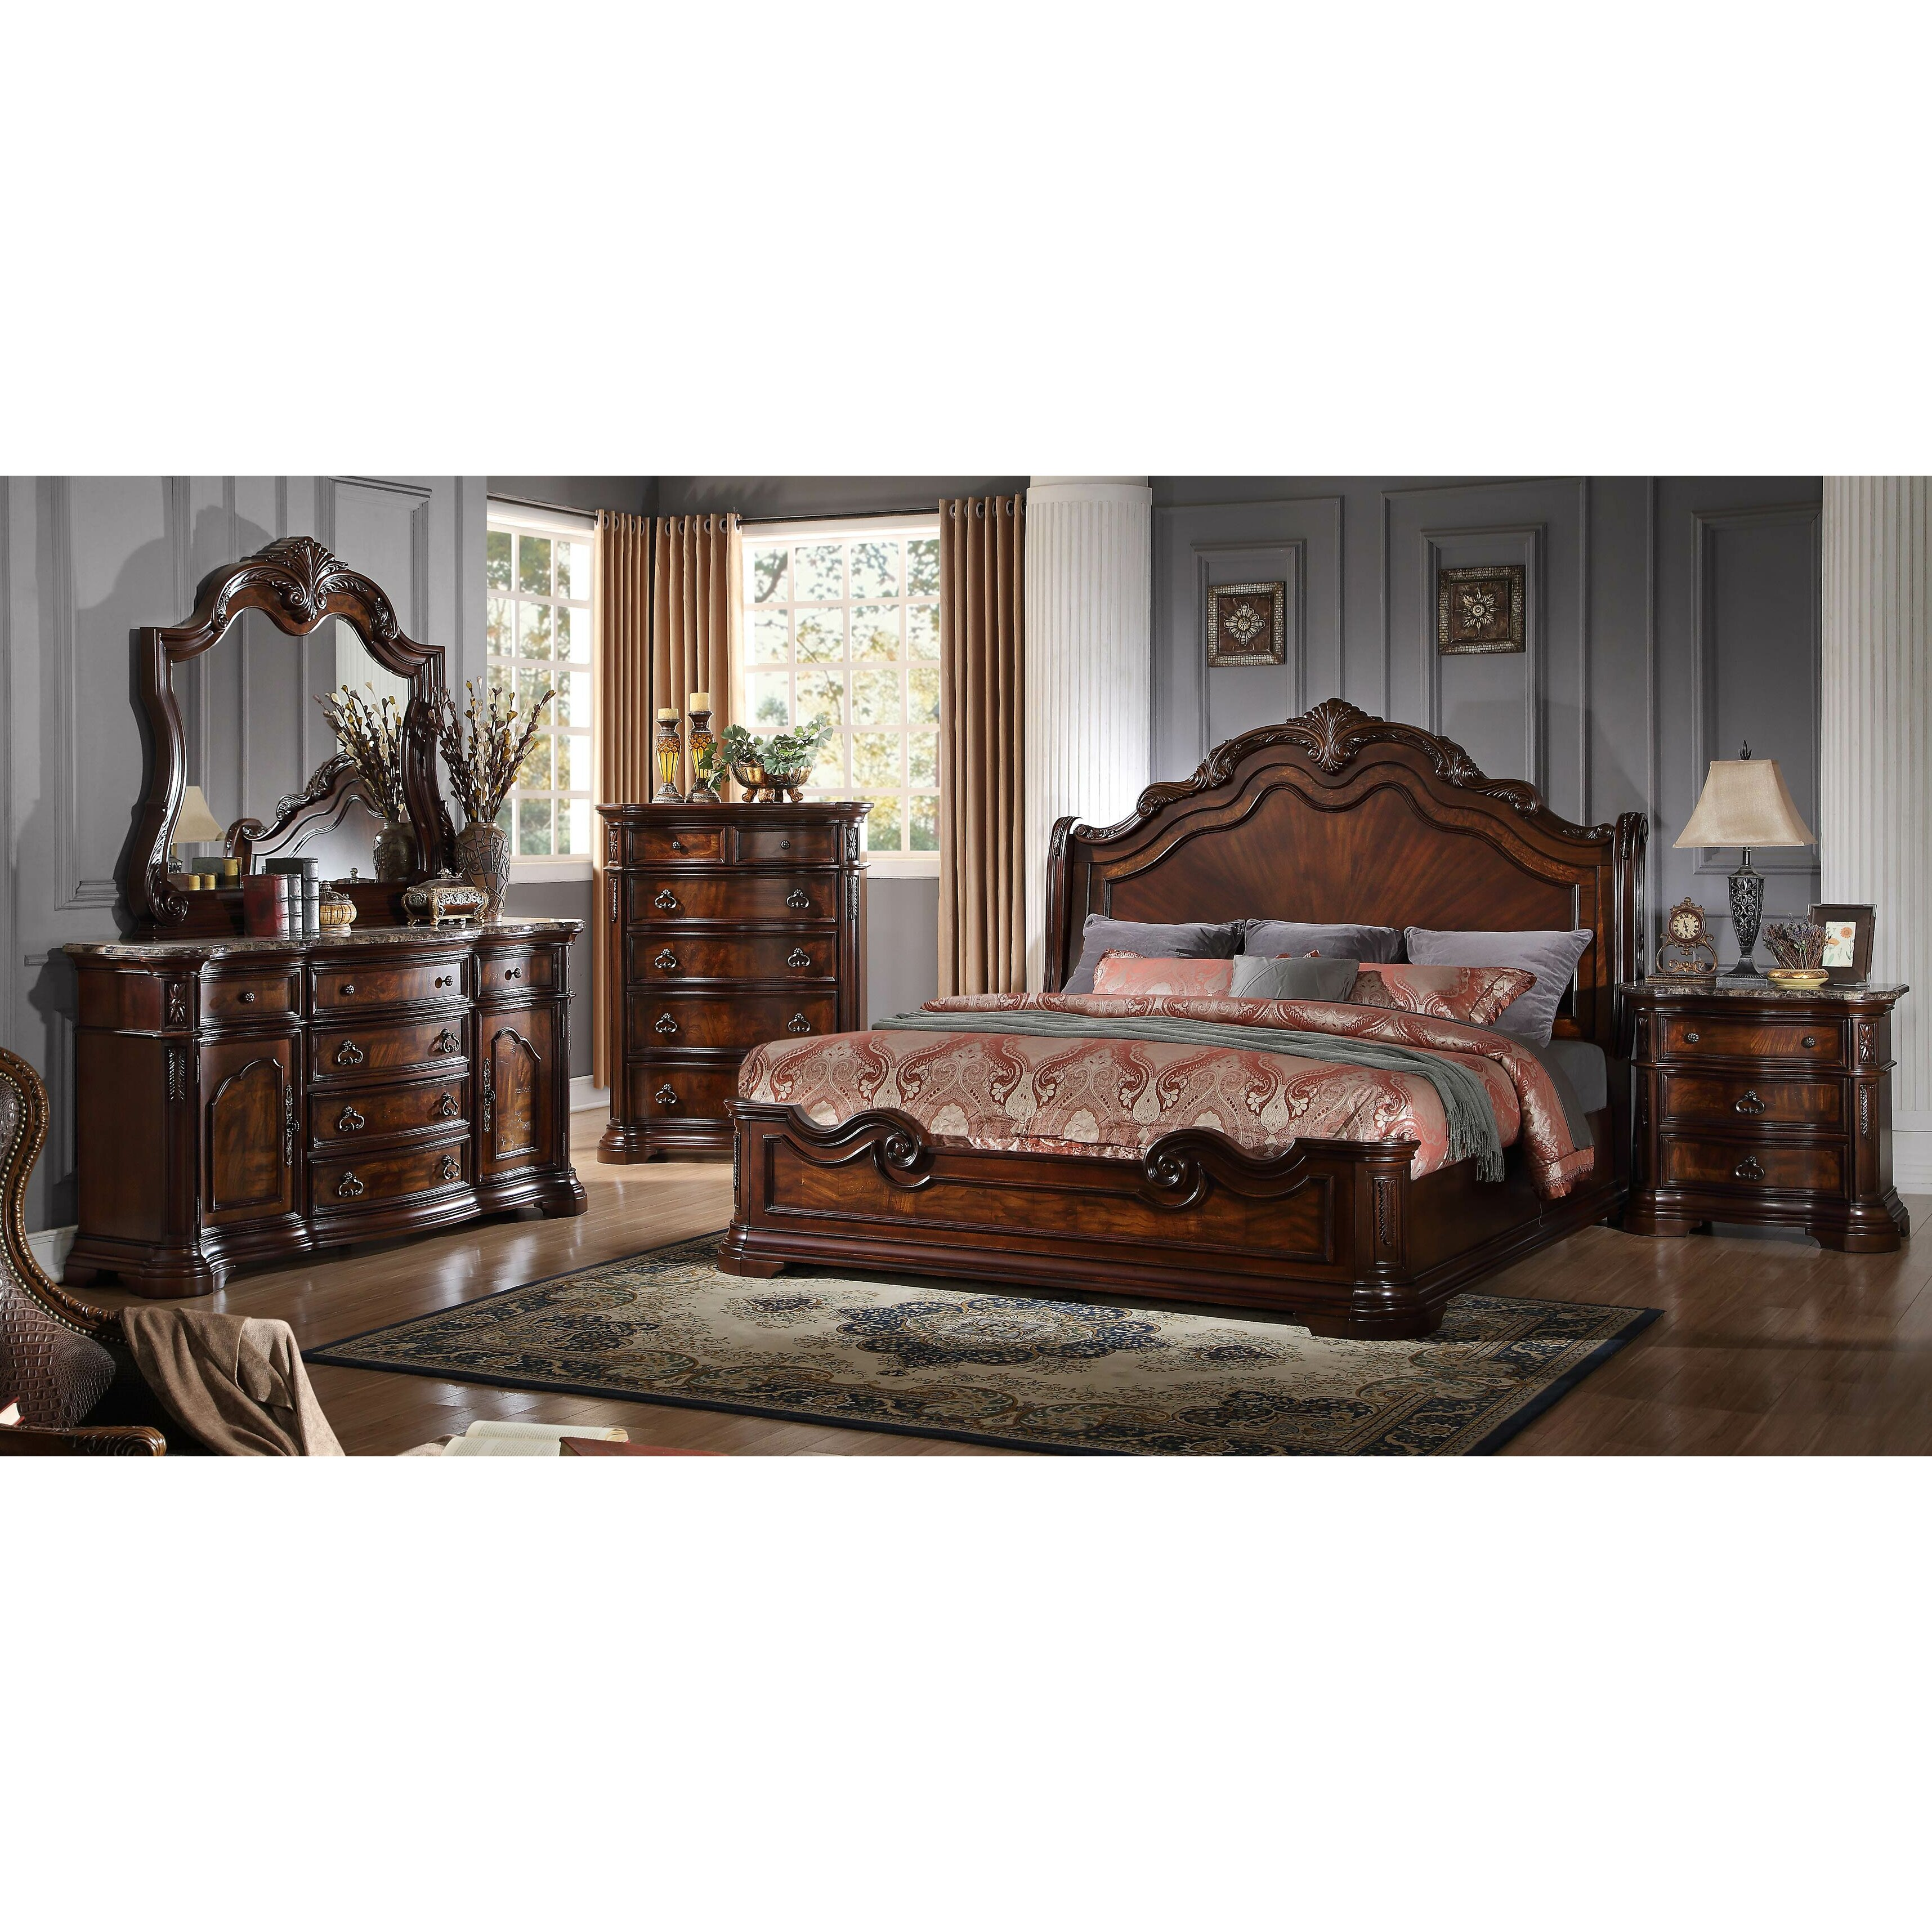 Bestmasterfurniture Panel 5 Piece Bedroom Set Reviews